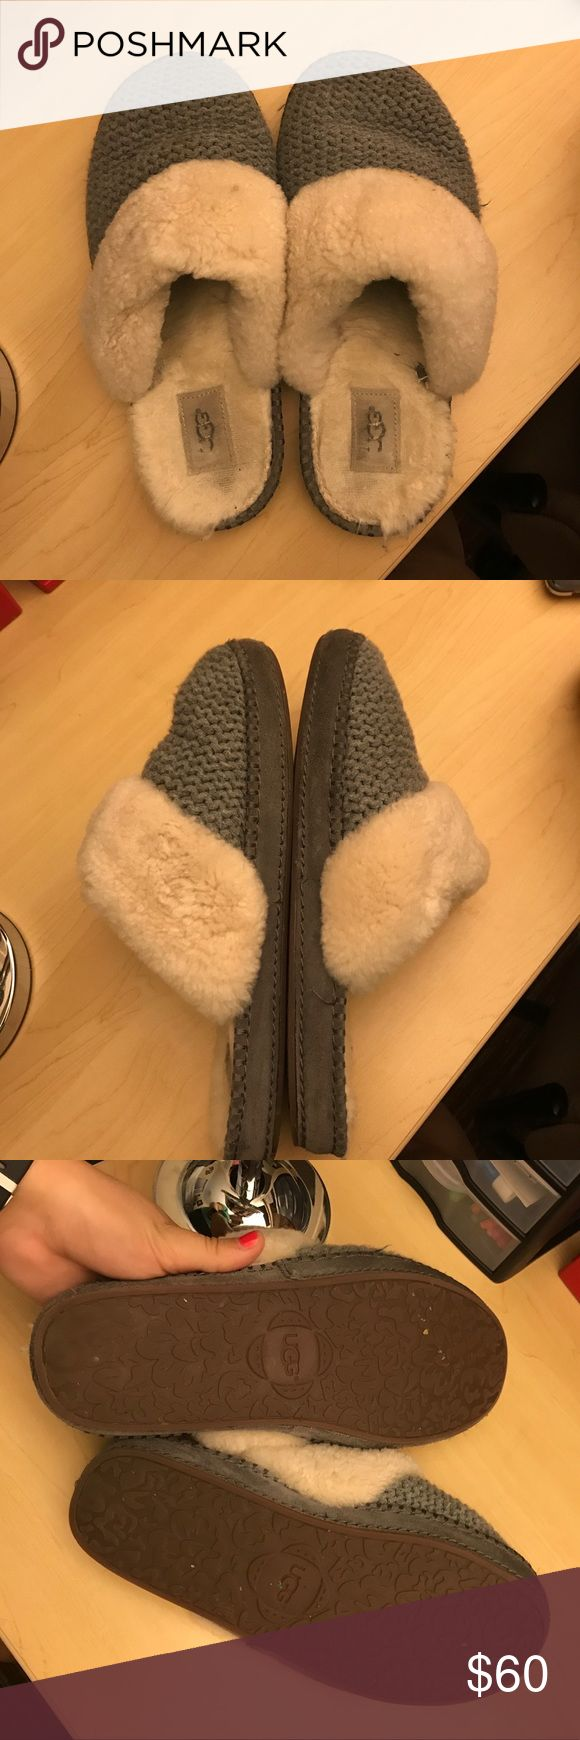 Knit UGG Slippers Grey knit UGG slippers in pretty good condition. Normal wear and tear!!! Worn but still so stylish and comfy! Can be cleaned. UGG Shoes Slippers